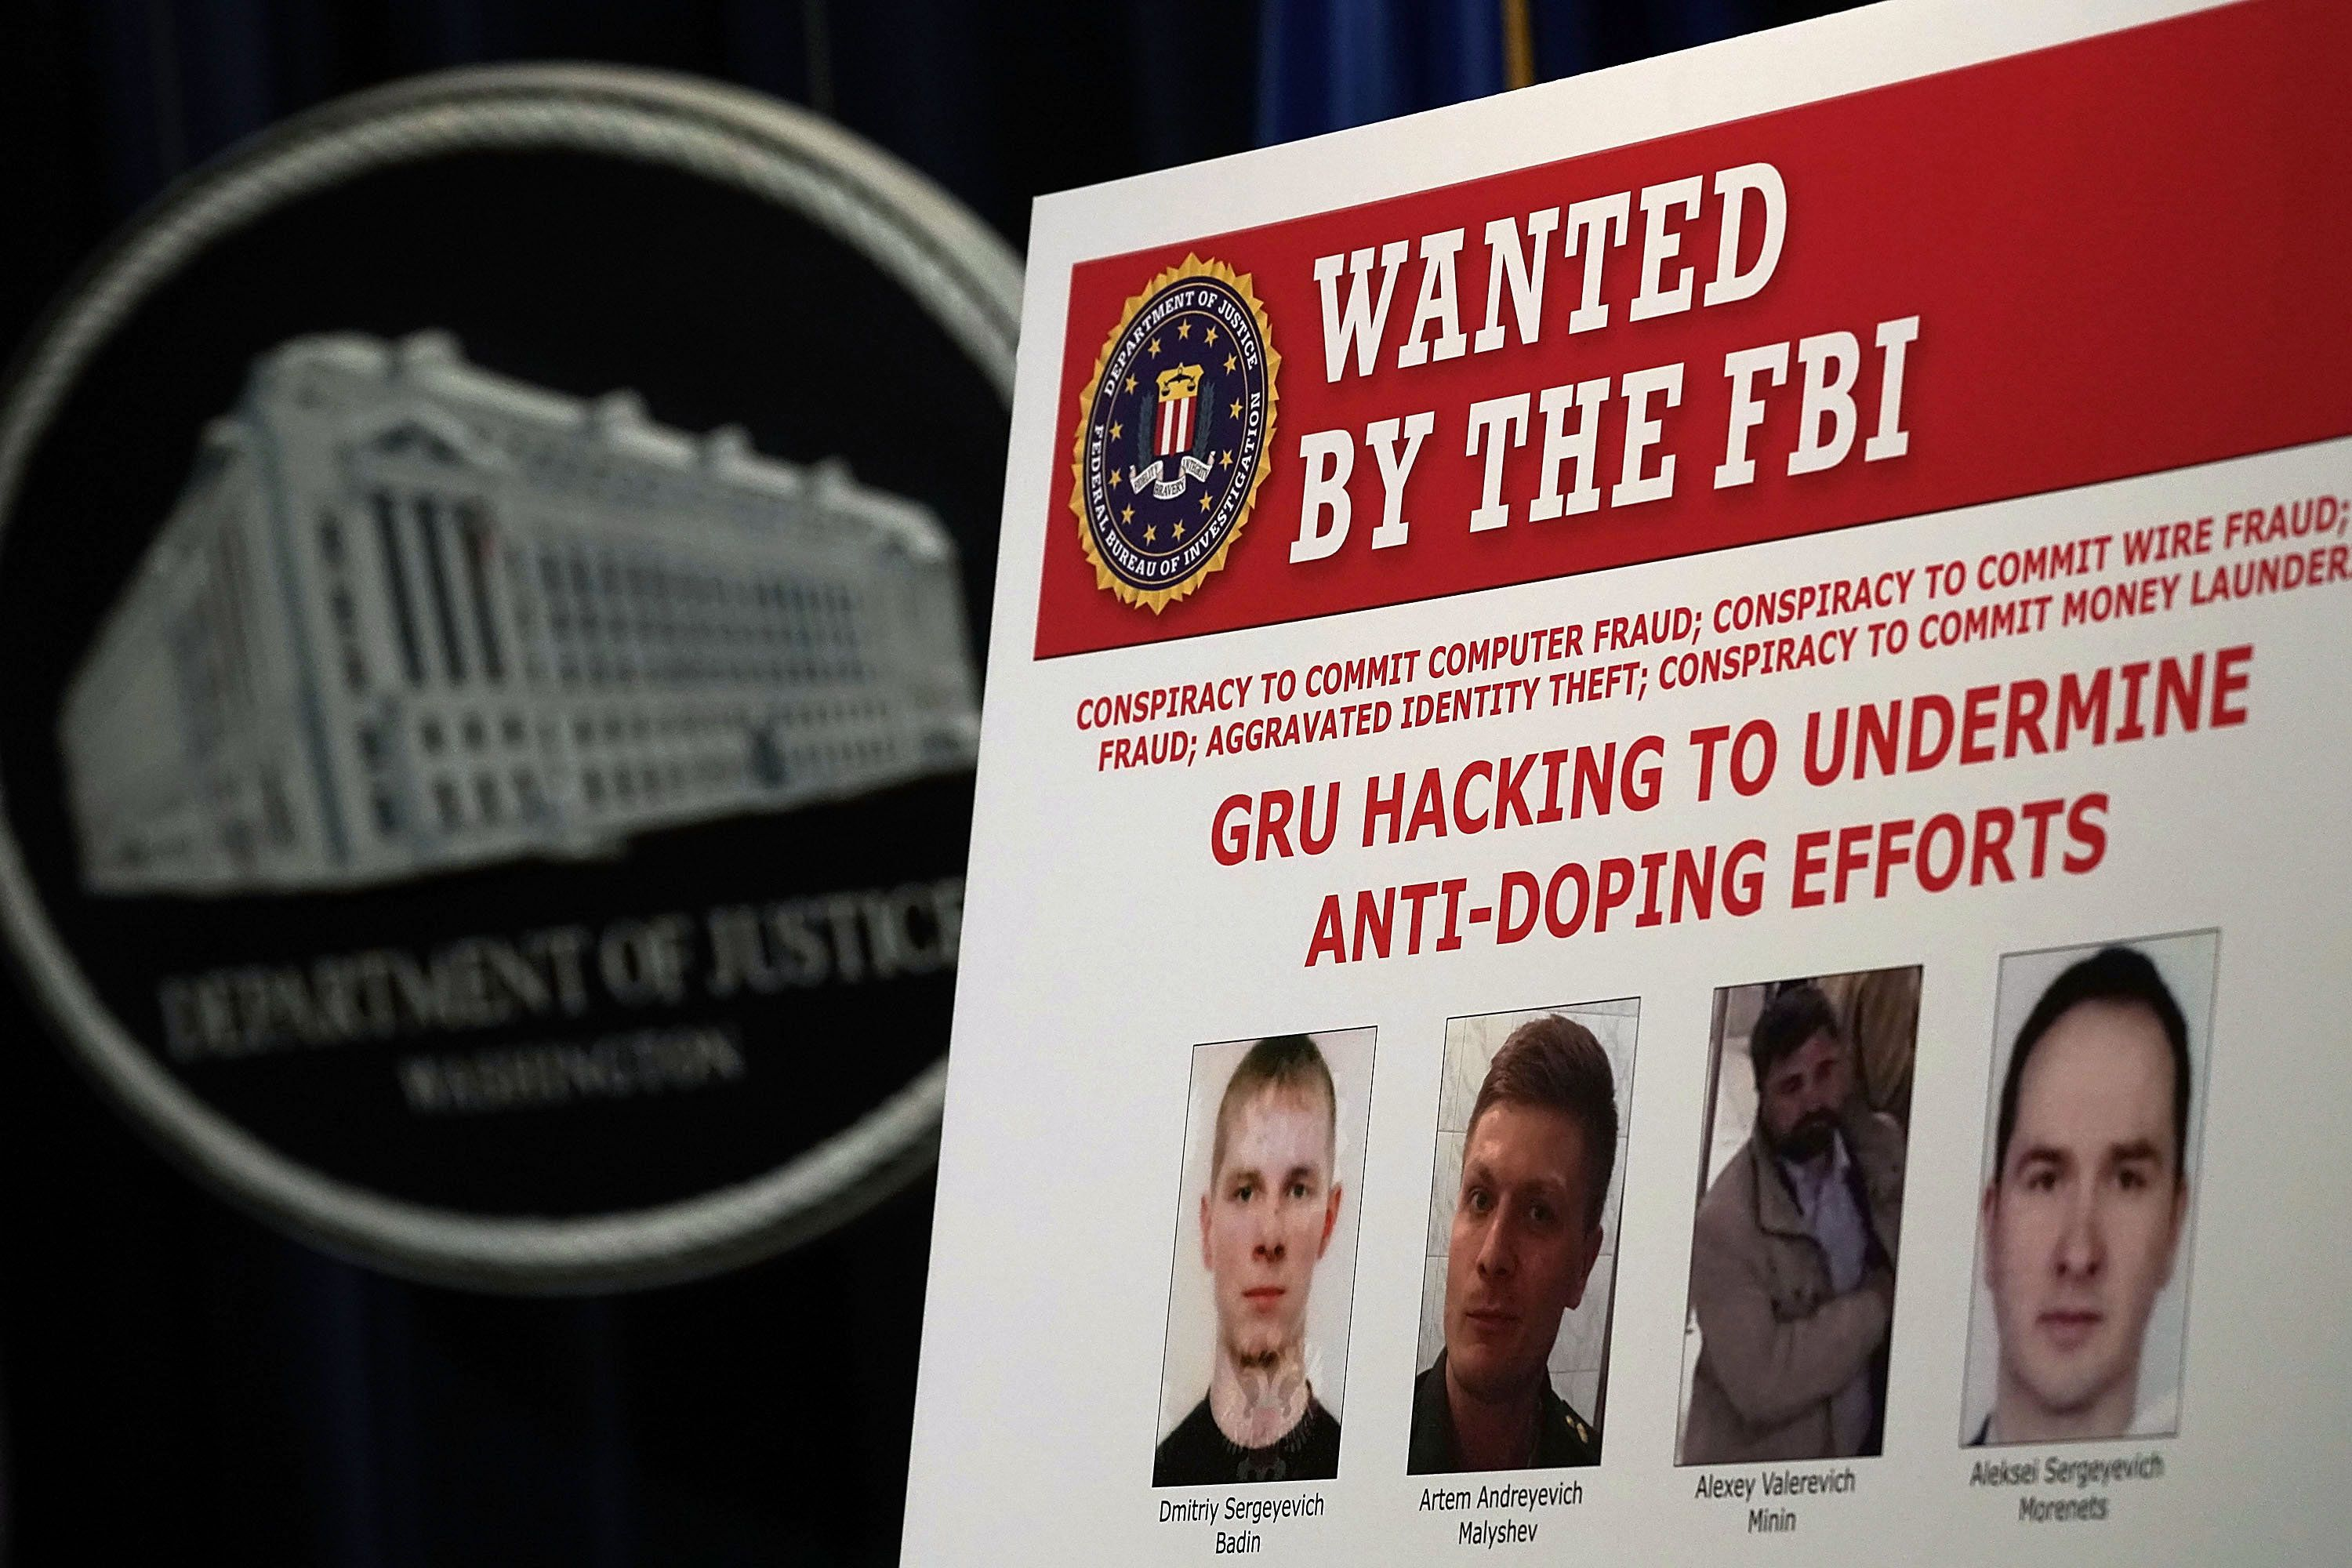 WASHINGTON, DC - OCTOBER 04:  A 'WANTED' poster of Russian individuals is seen during a news conference to announce criminal charges October 4, 2018 in Washington, DC. Seven Russian GRU intelligence officers have been indicted for their alleged roles in hacking and related influence and disinformation operations targeting international anti-doping agencies, sporting federations and anti-doping officials.  (Photo by Alex Wong/Getty Images)